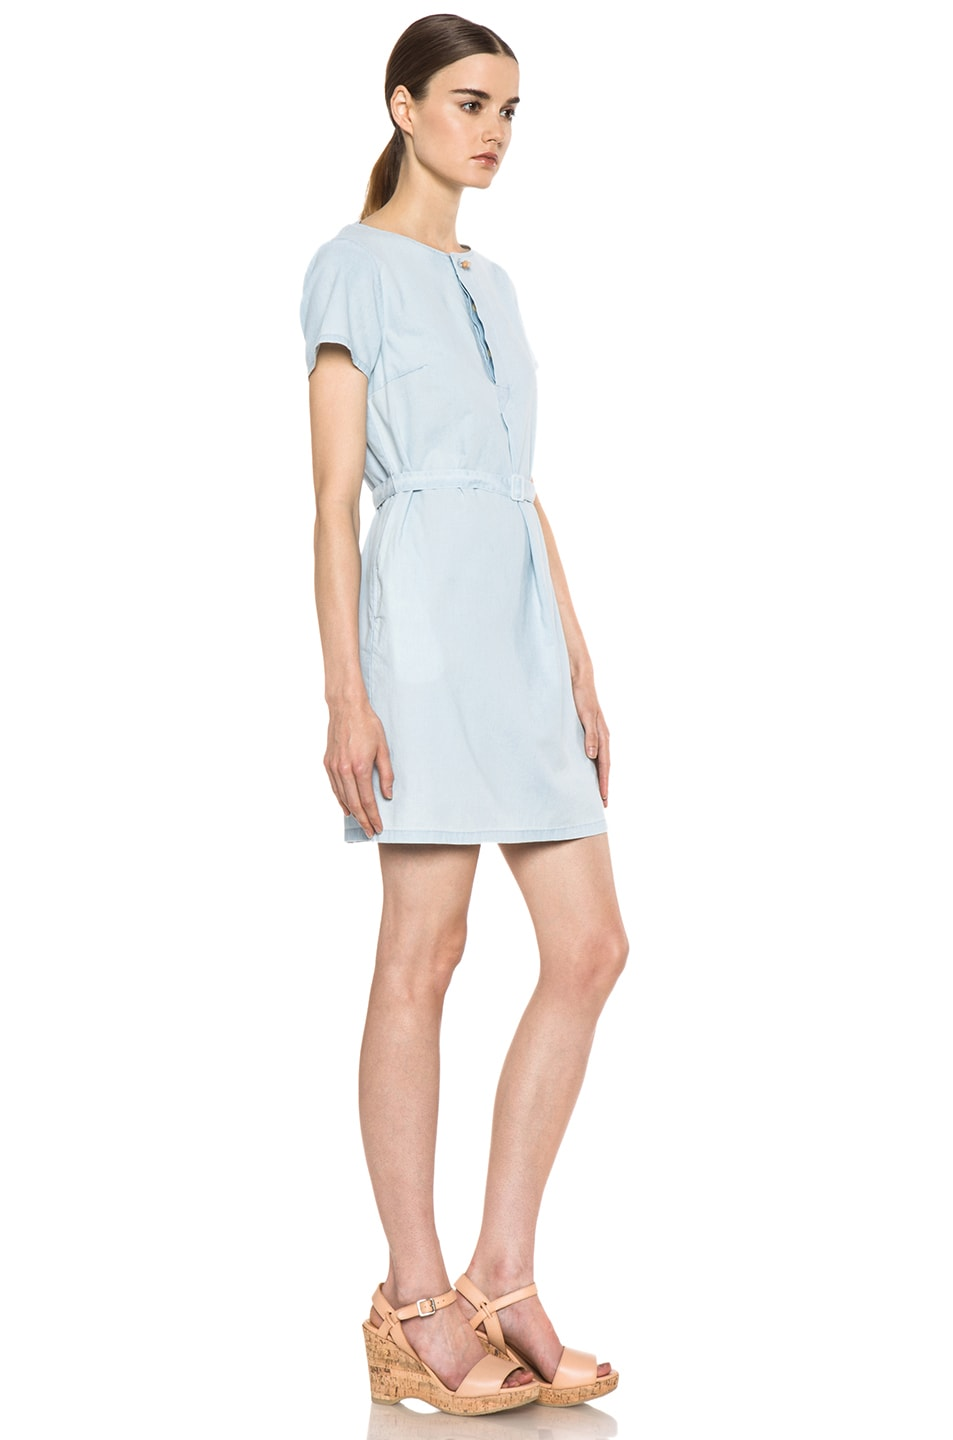 Image 3 of A.P.C. Chambray Dress in Bleu Ciel